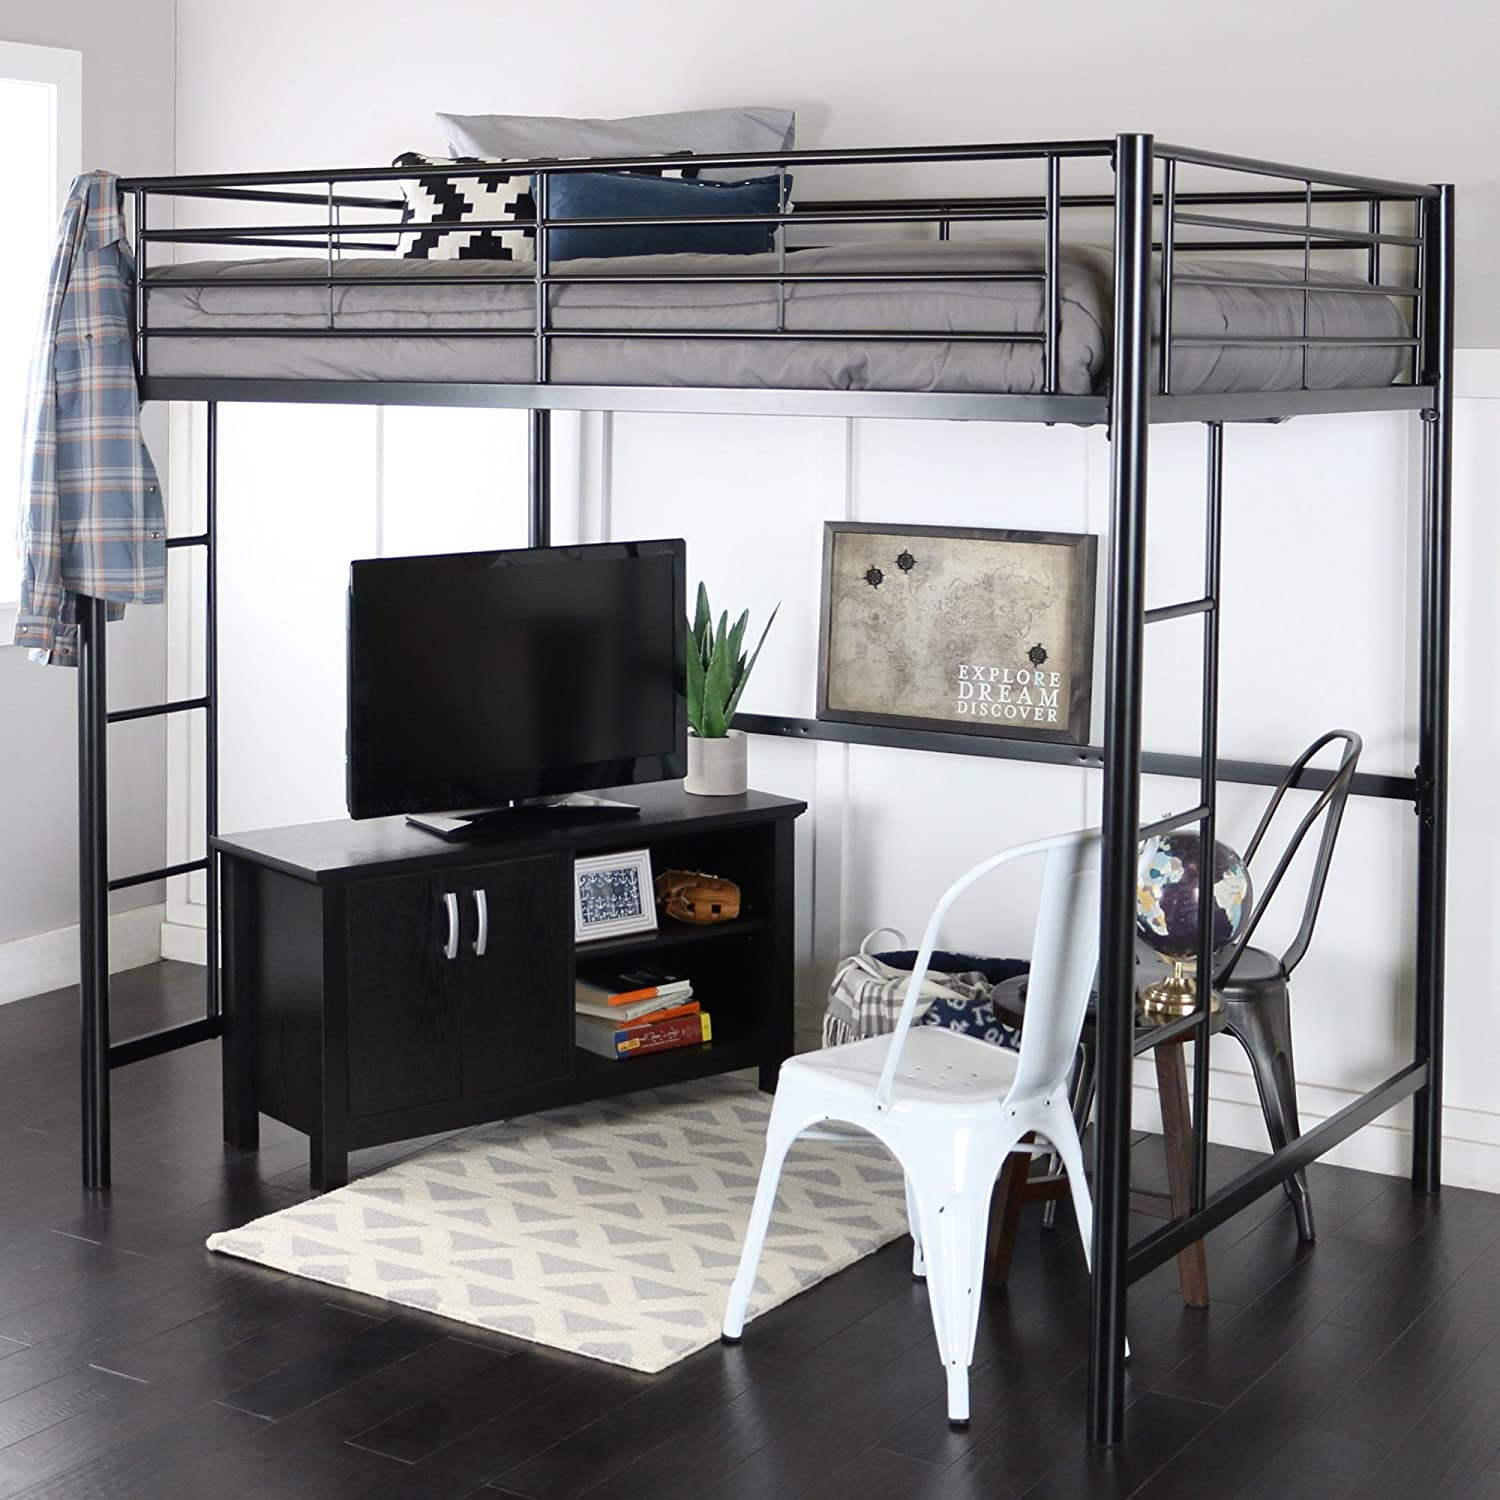 black desk with master bed bunk cfm hayneedle full loft z product zbunkbedloftdeskblack duro